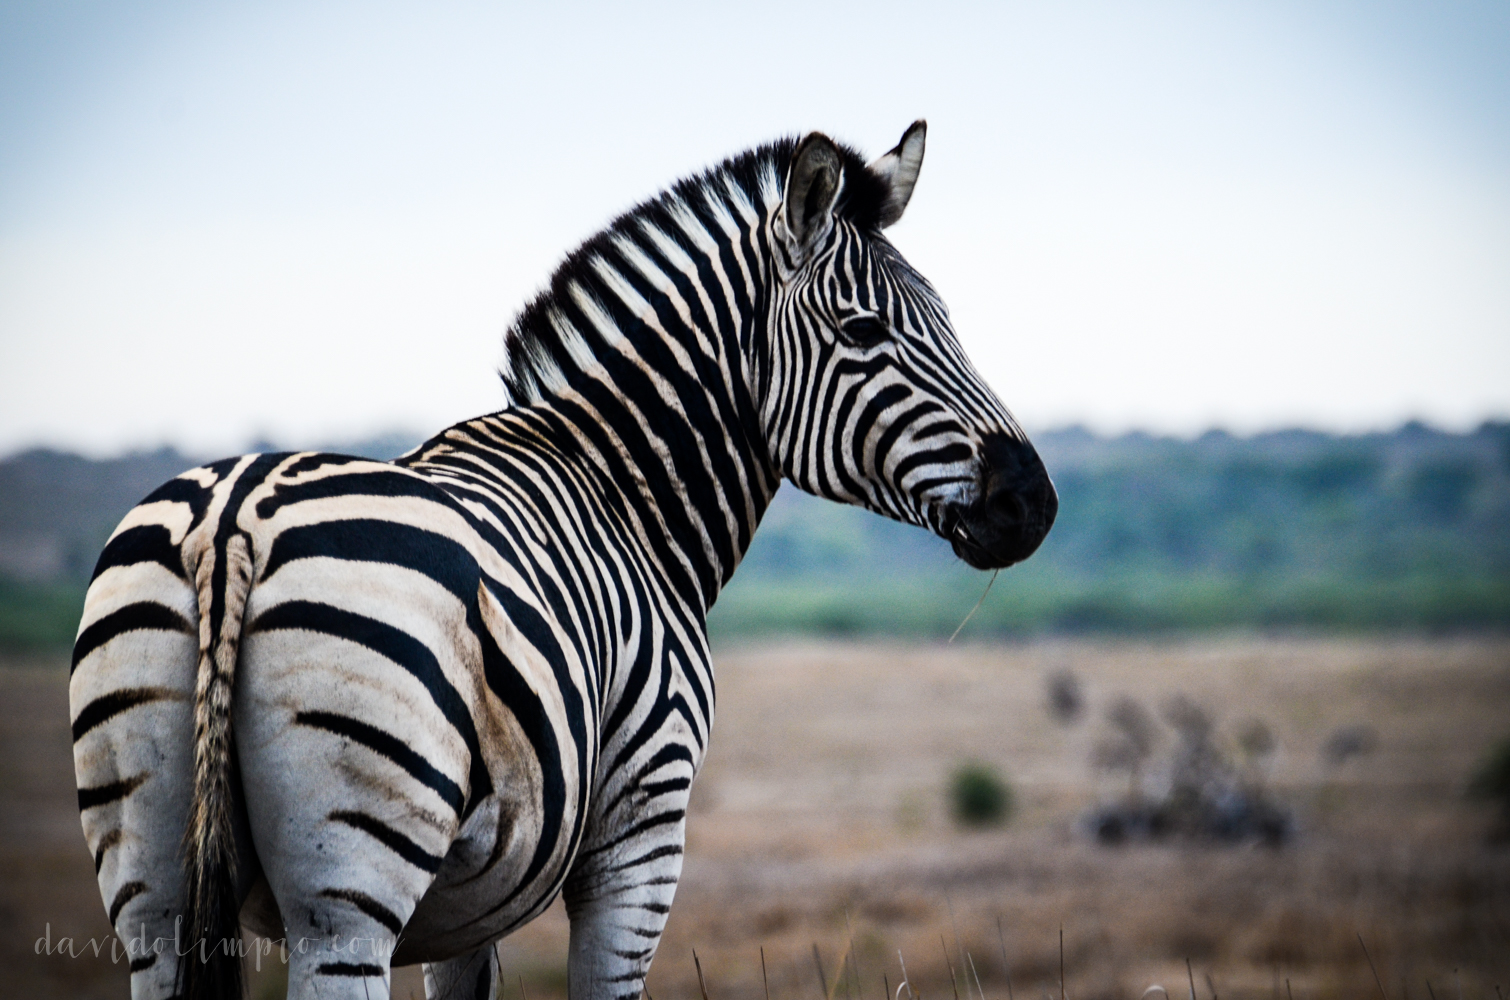 David Olimpio Photography: South Africa Safari - Zebra